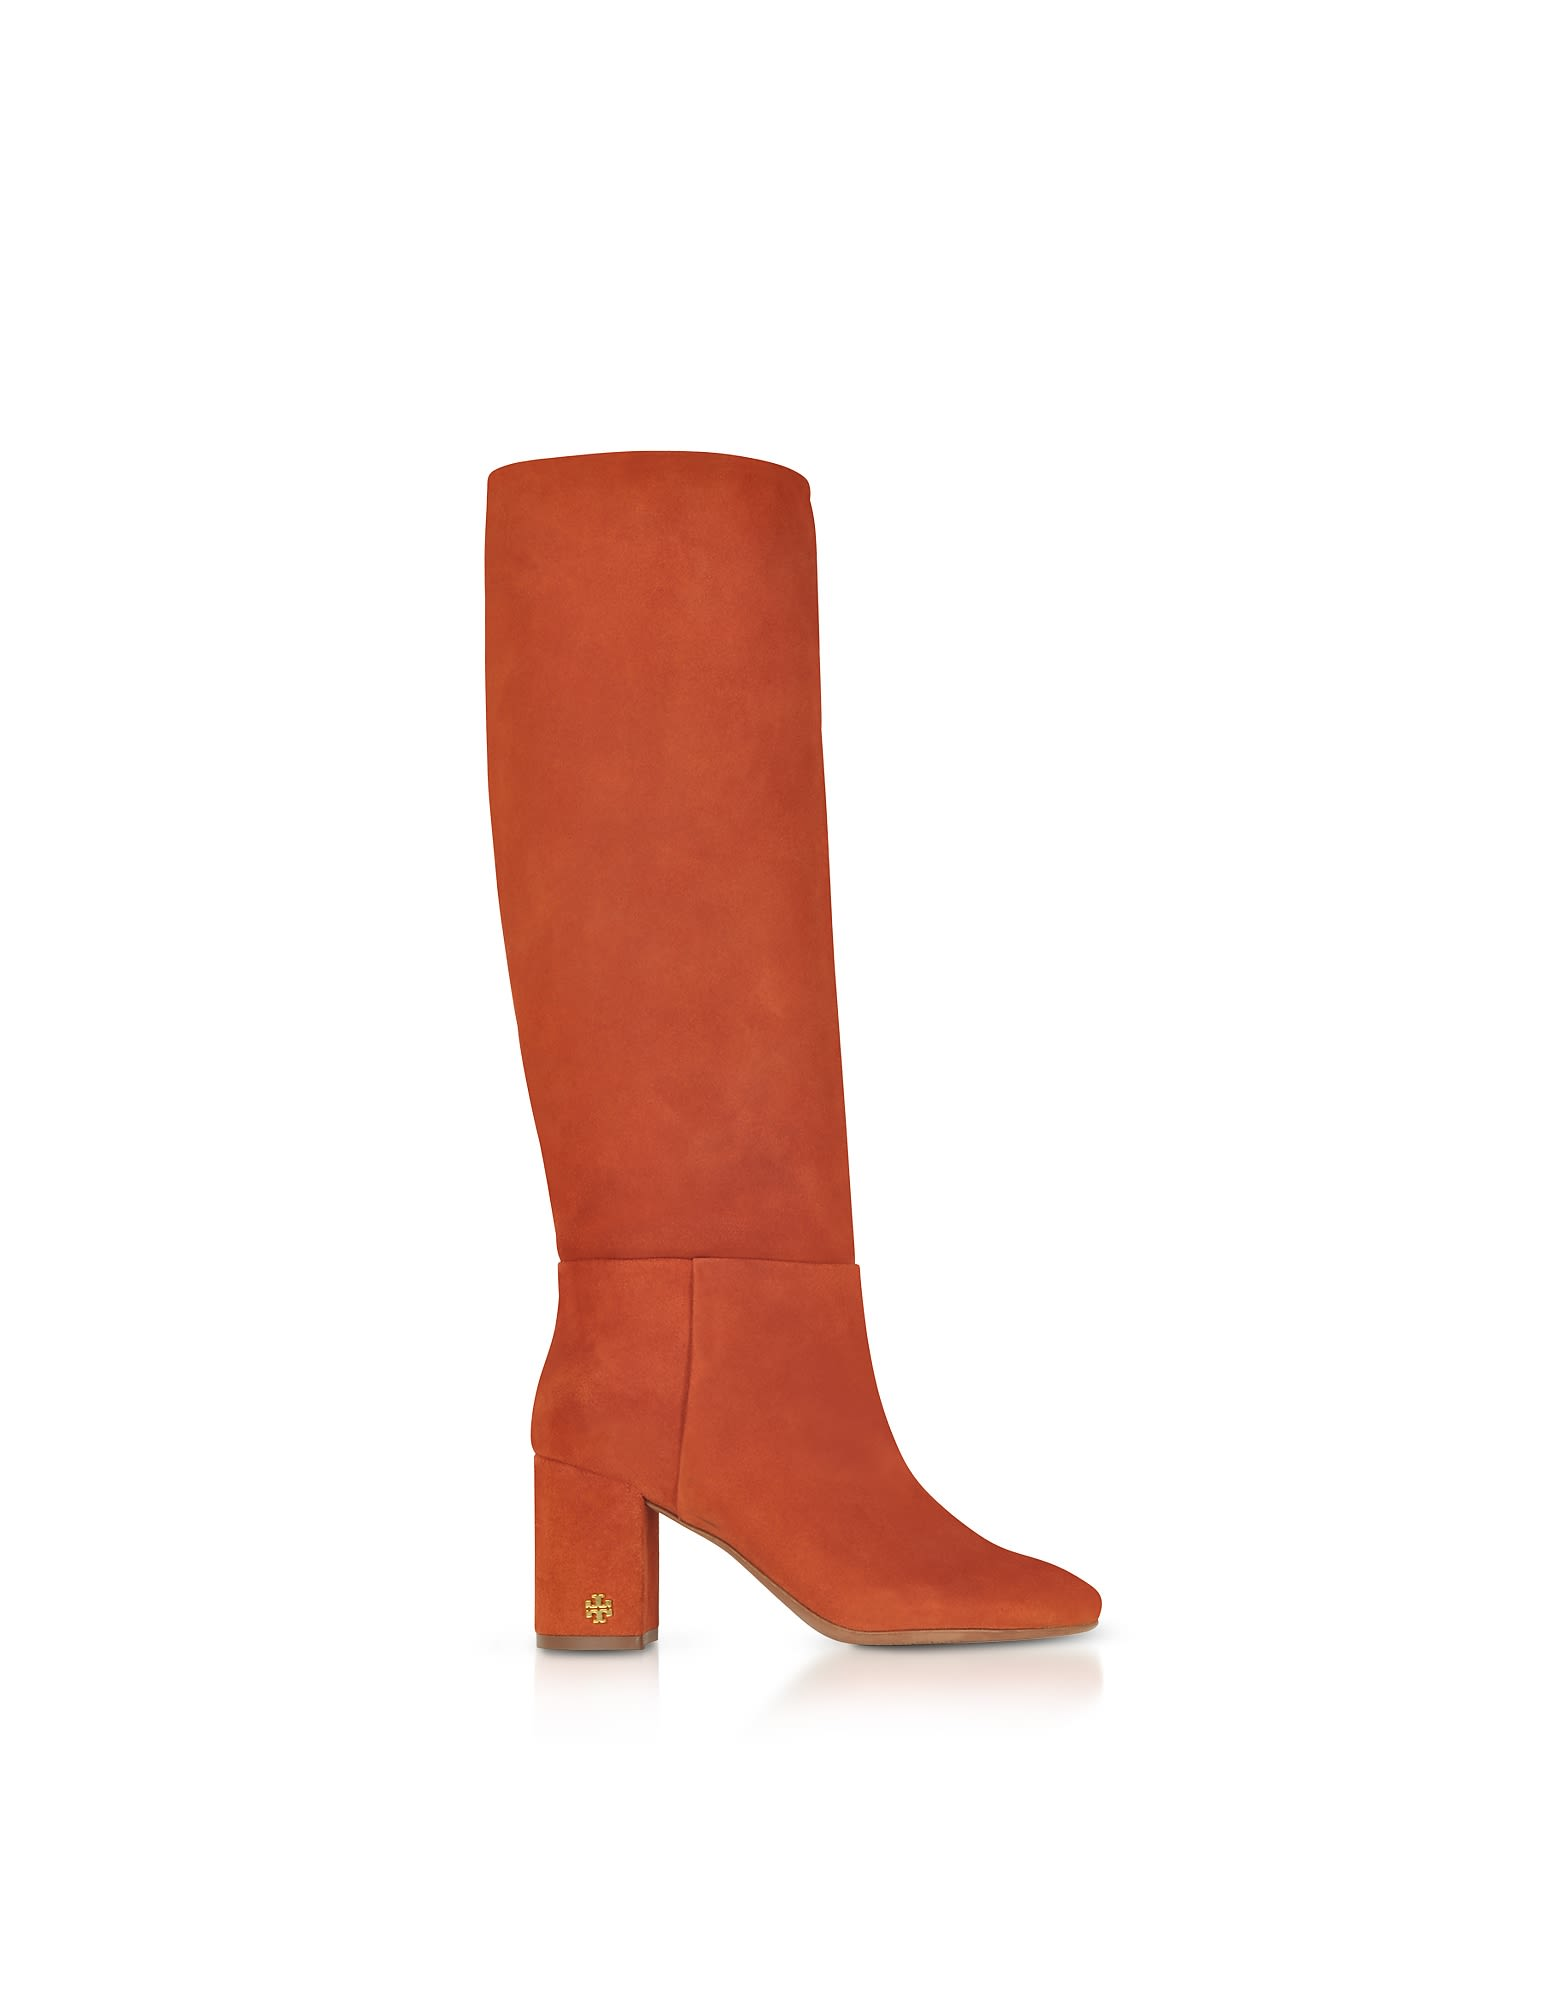 BROOKE DESERT SUEDE SPICE SLOUCHY BOOTS